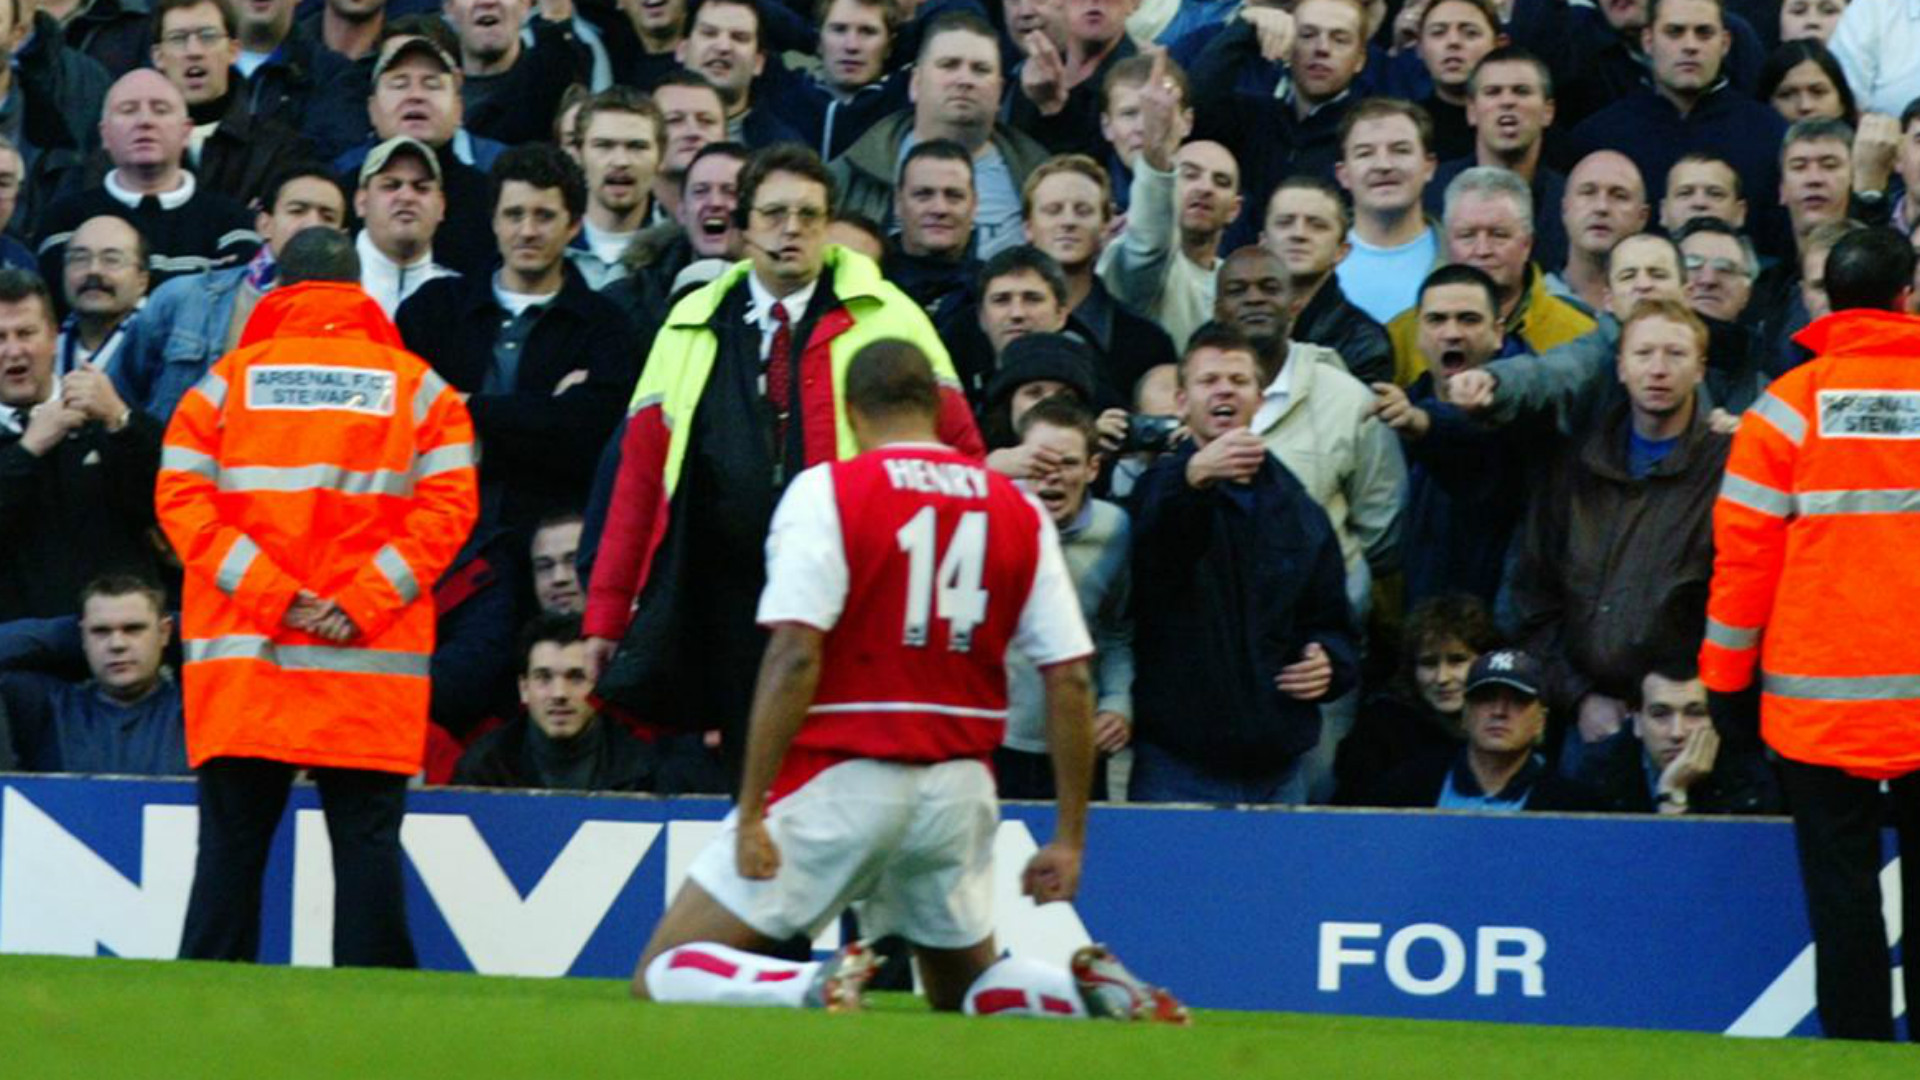 Thierry Henry Arsenal Tottenham Premier League